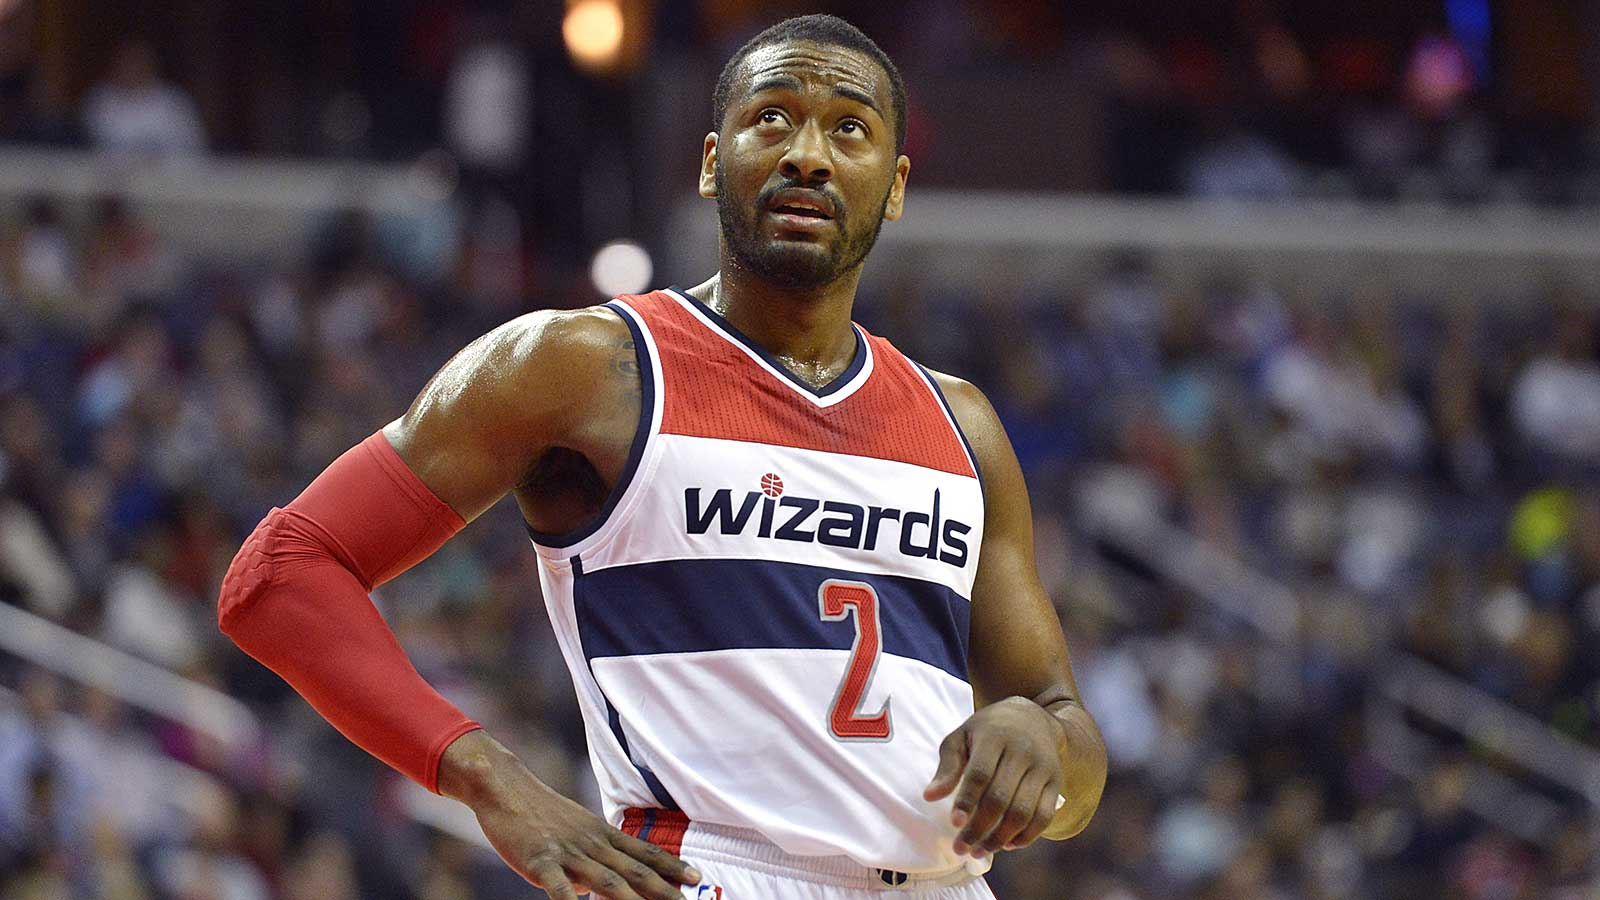 No one in the NBA is carrying as big a load as Wizards' John Wall